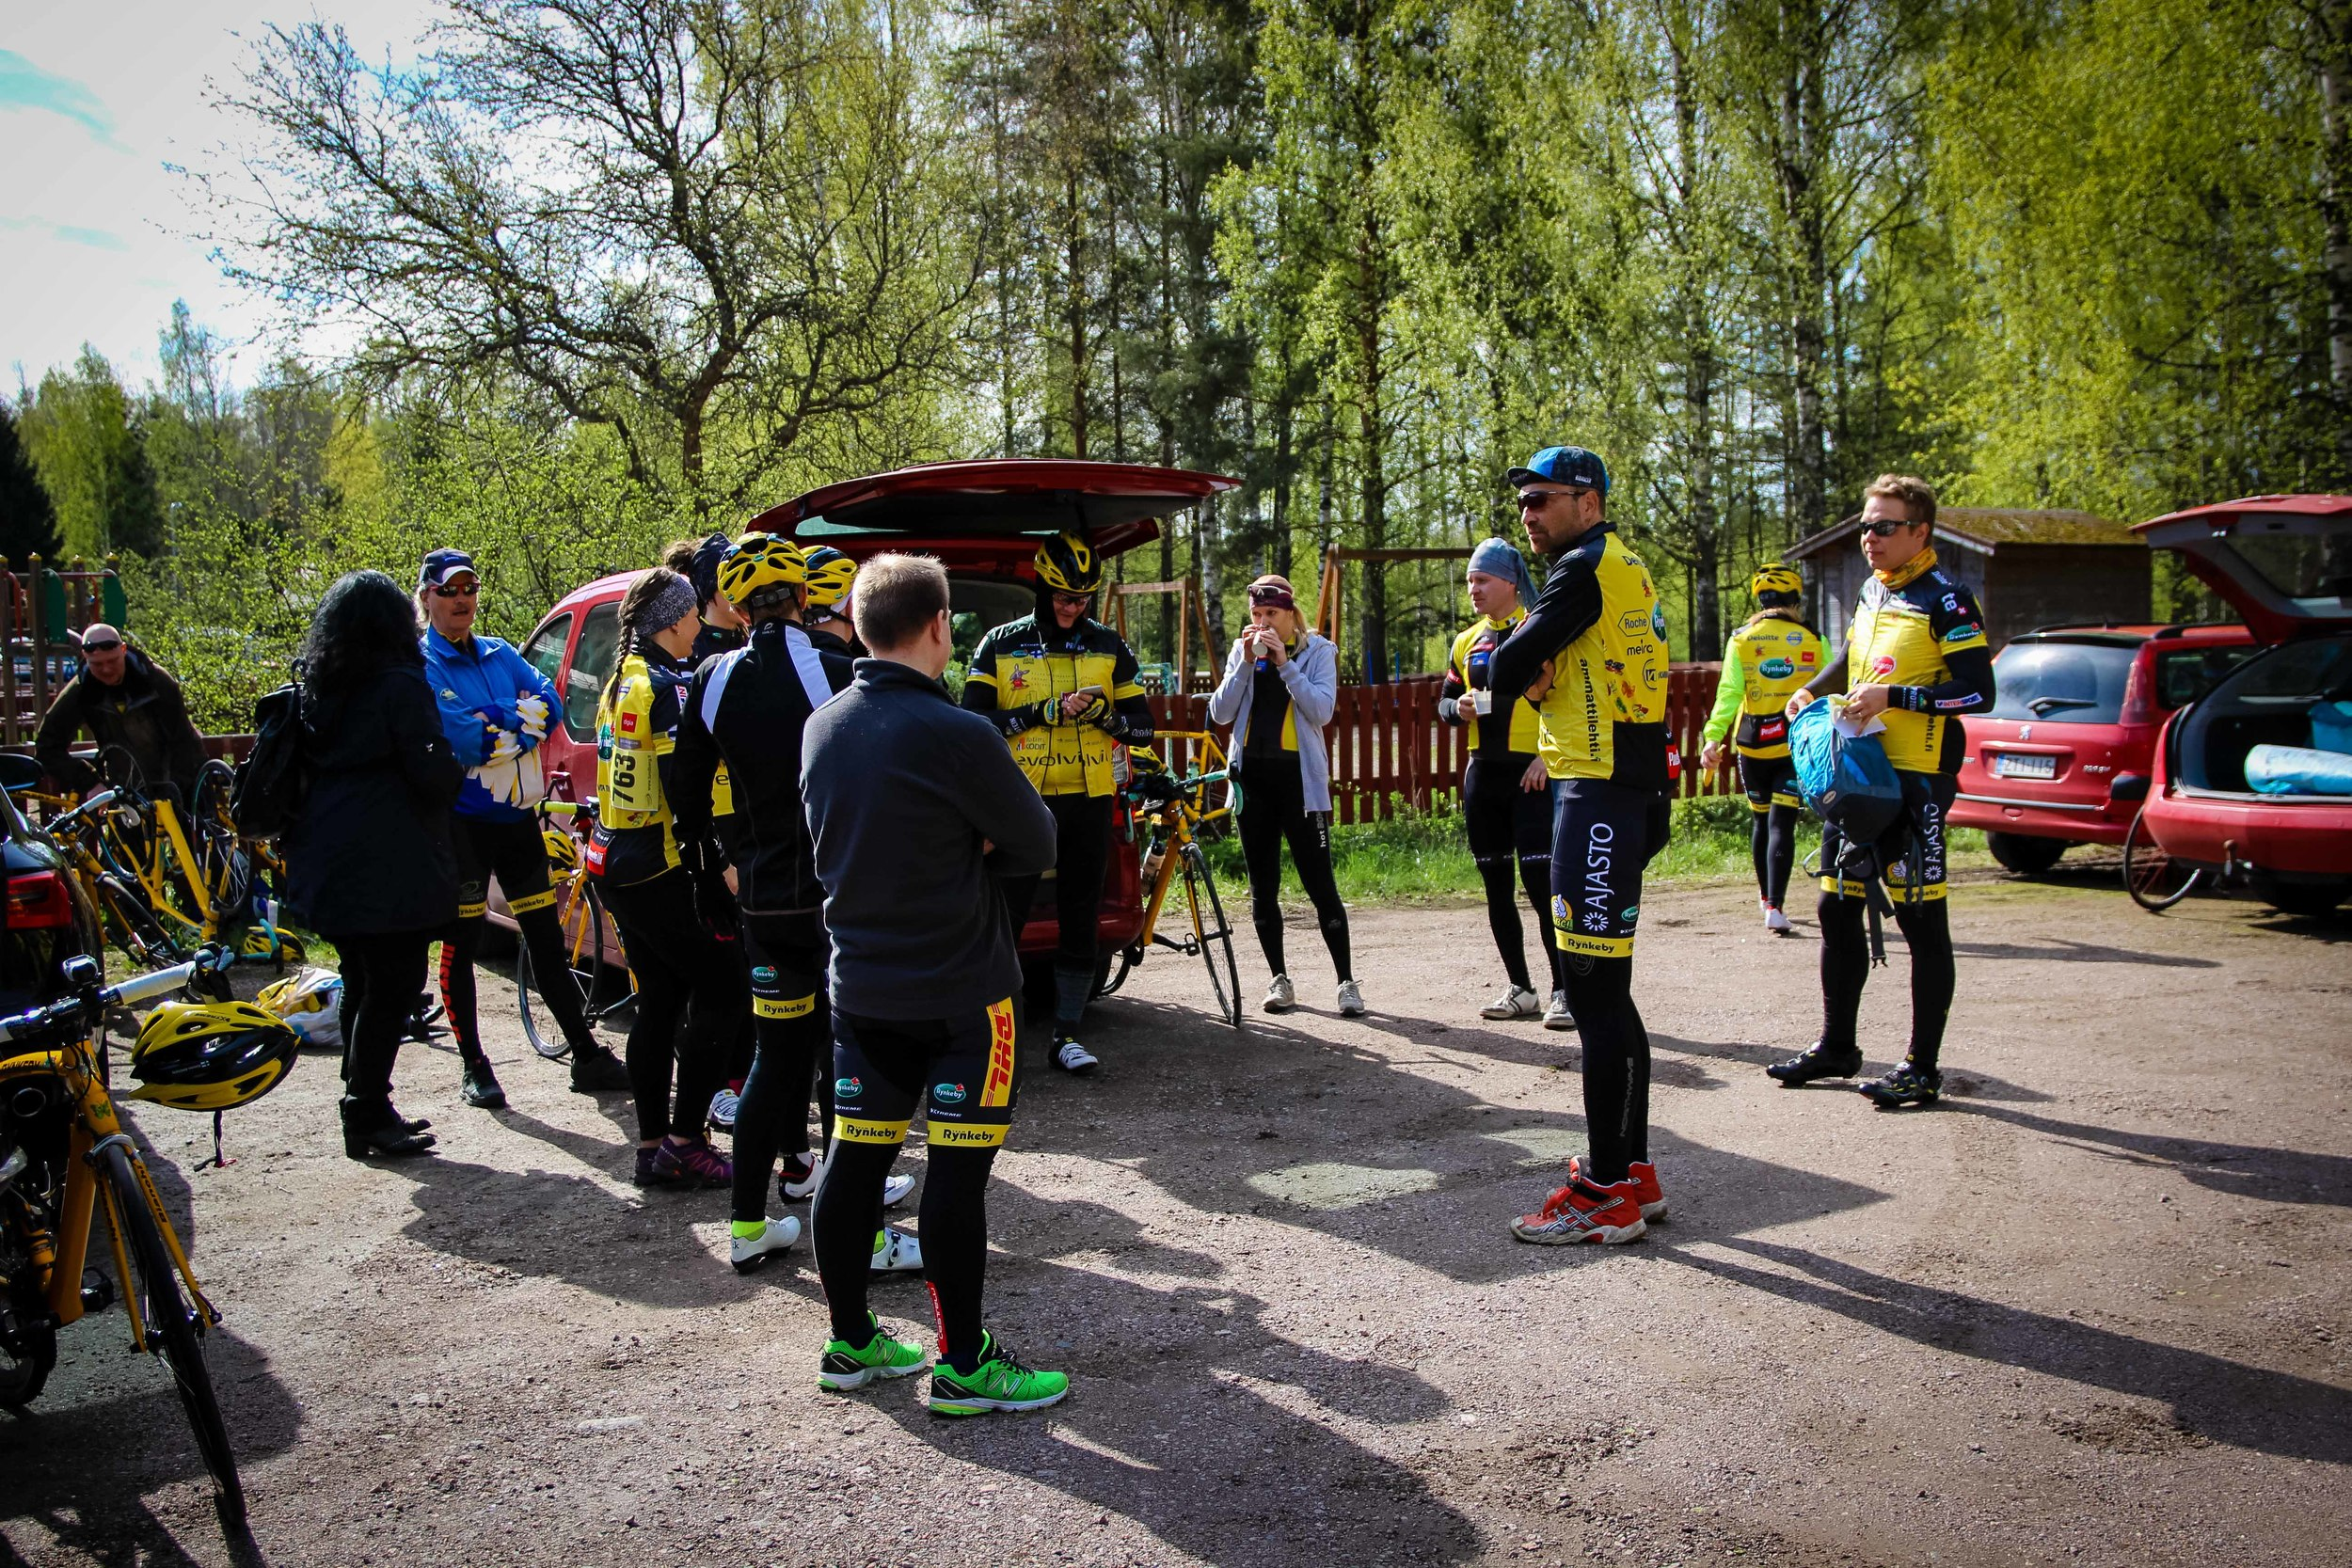 Team Rynkeby gathering before the race start